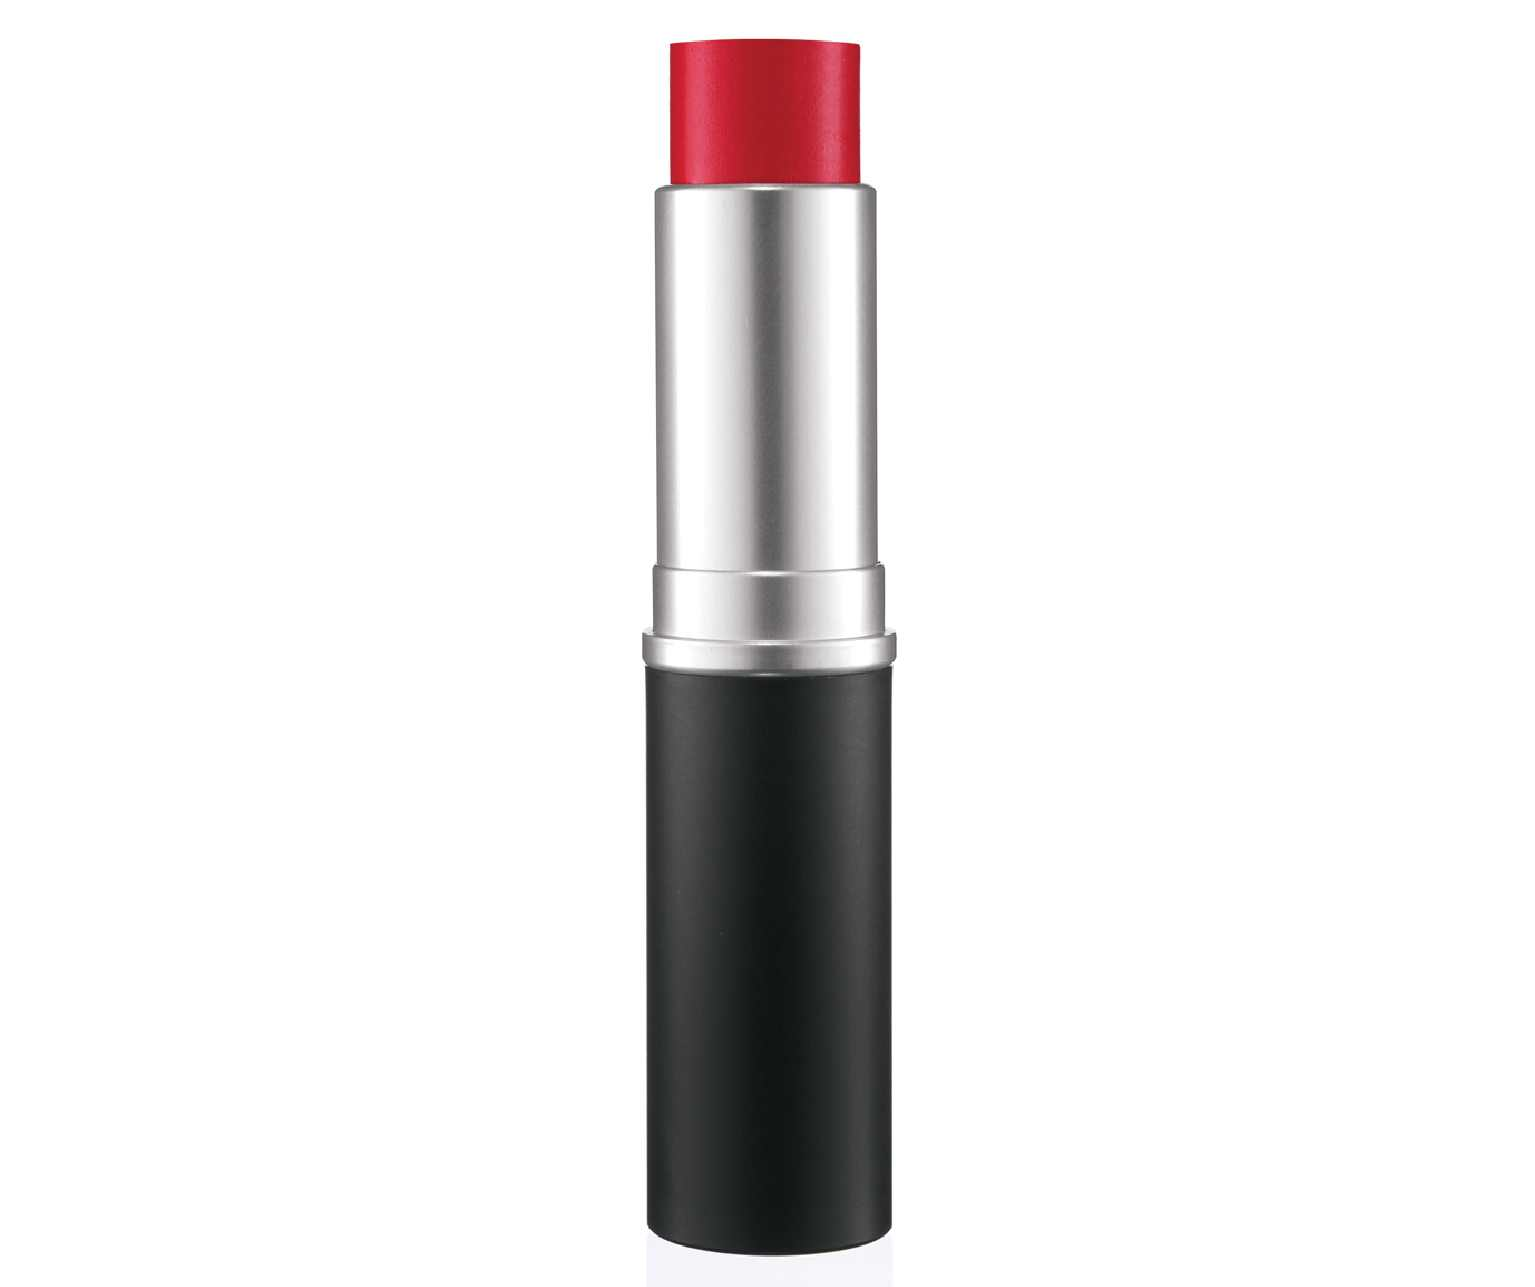 MAC Paint Stick in Basic RedMAC Paint Stick in Basic Red